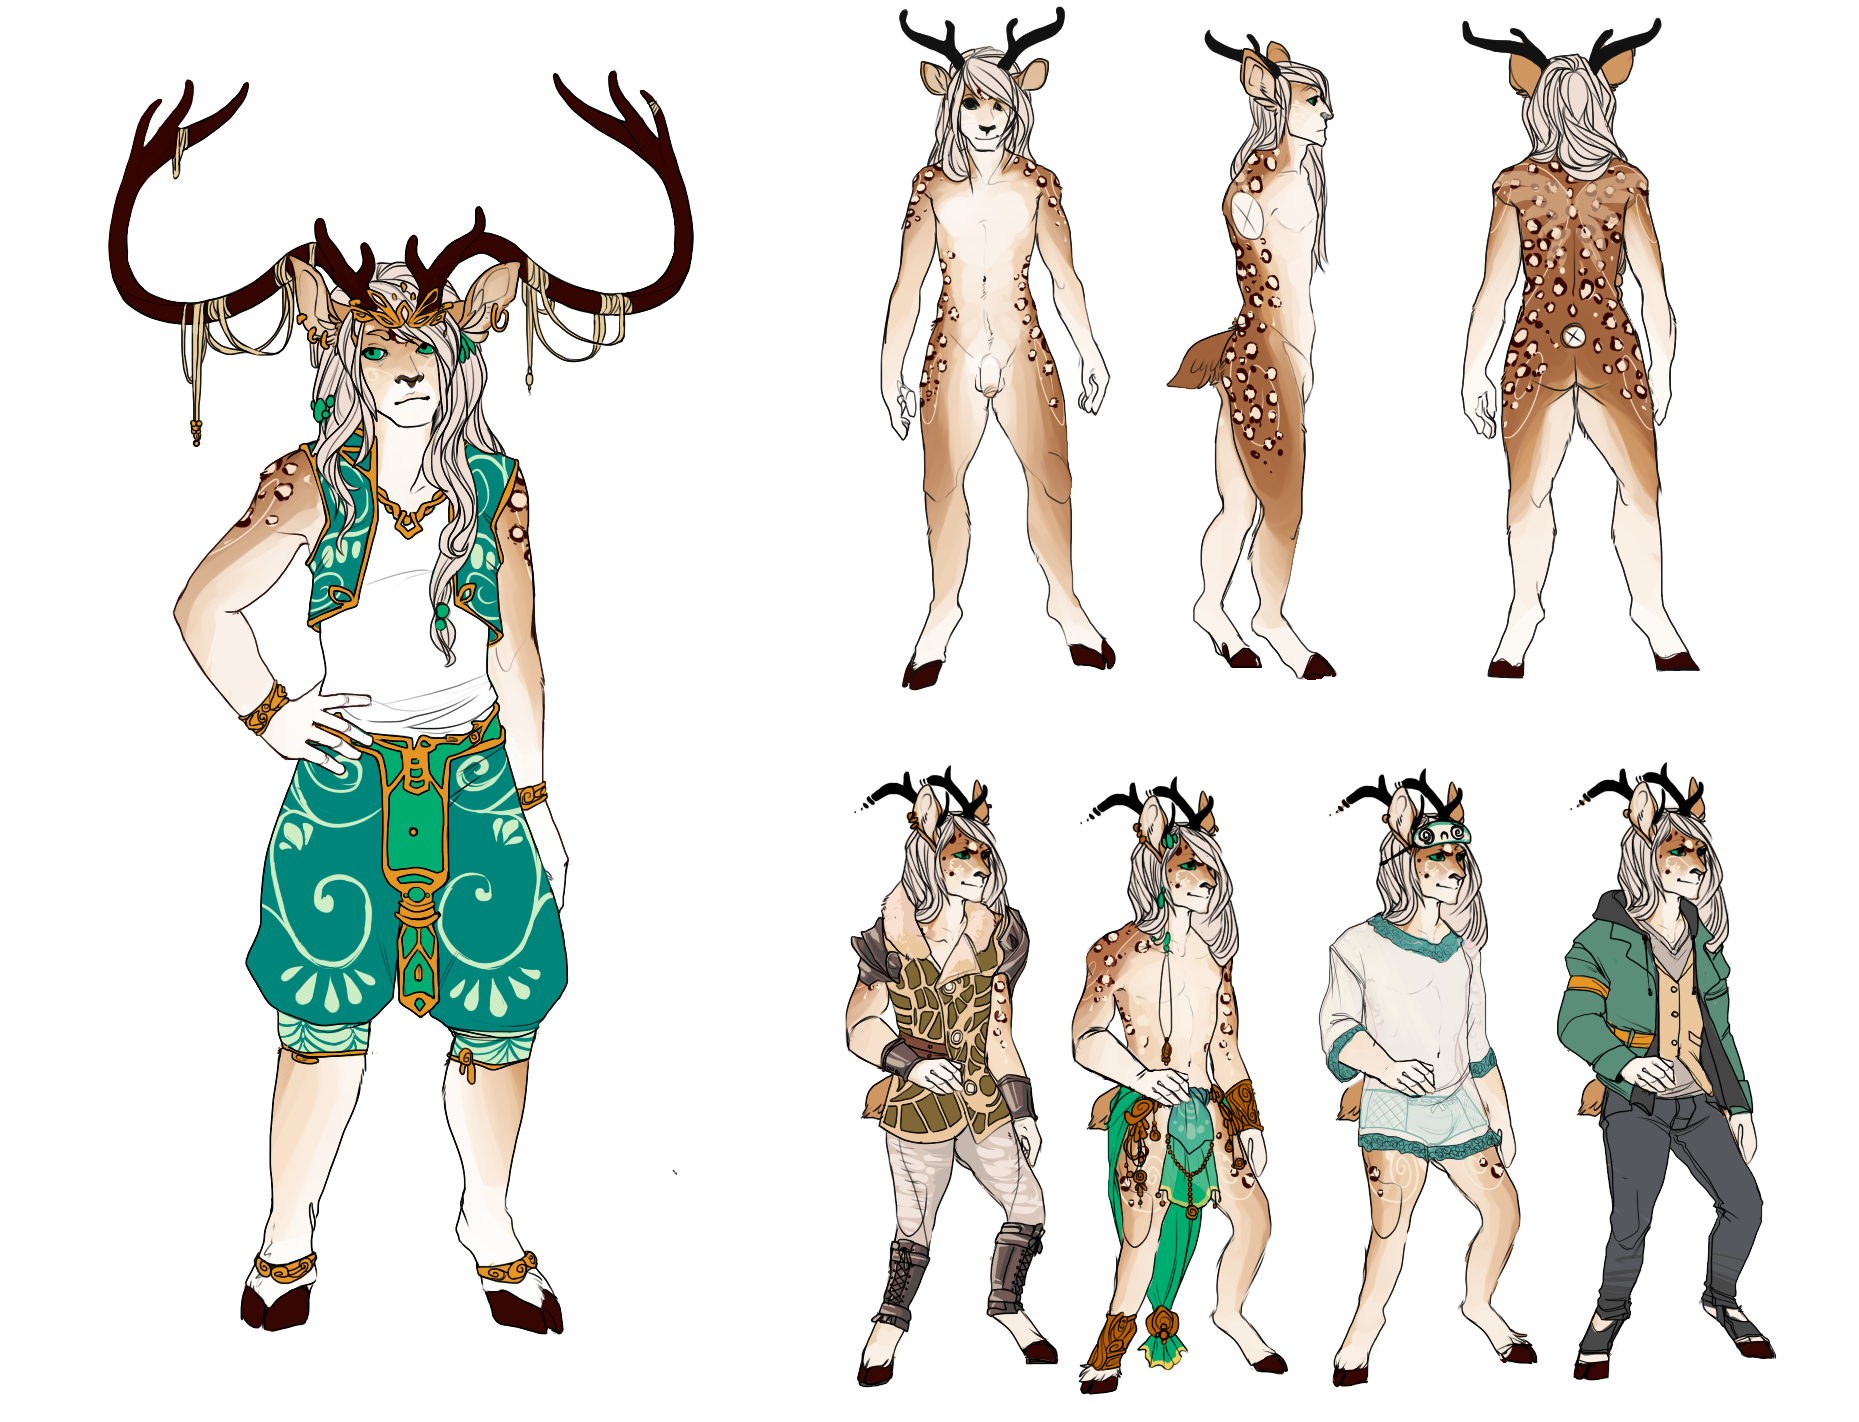 Feb 2015 - PaintTool Sai  Commissioned Character Sheet for the clients original character, Dream